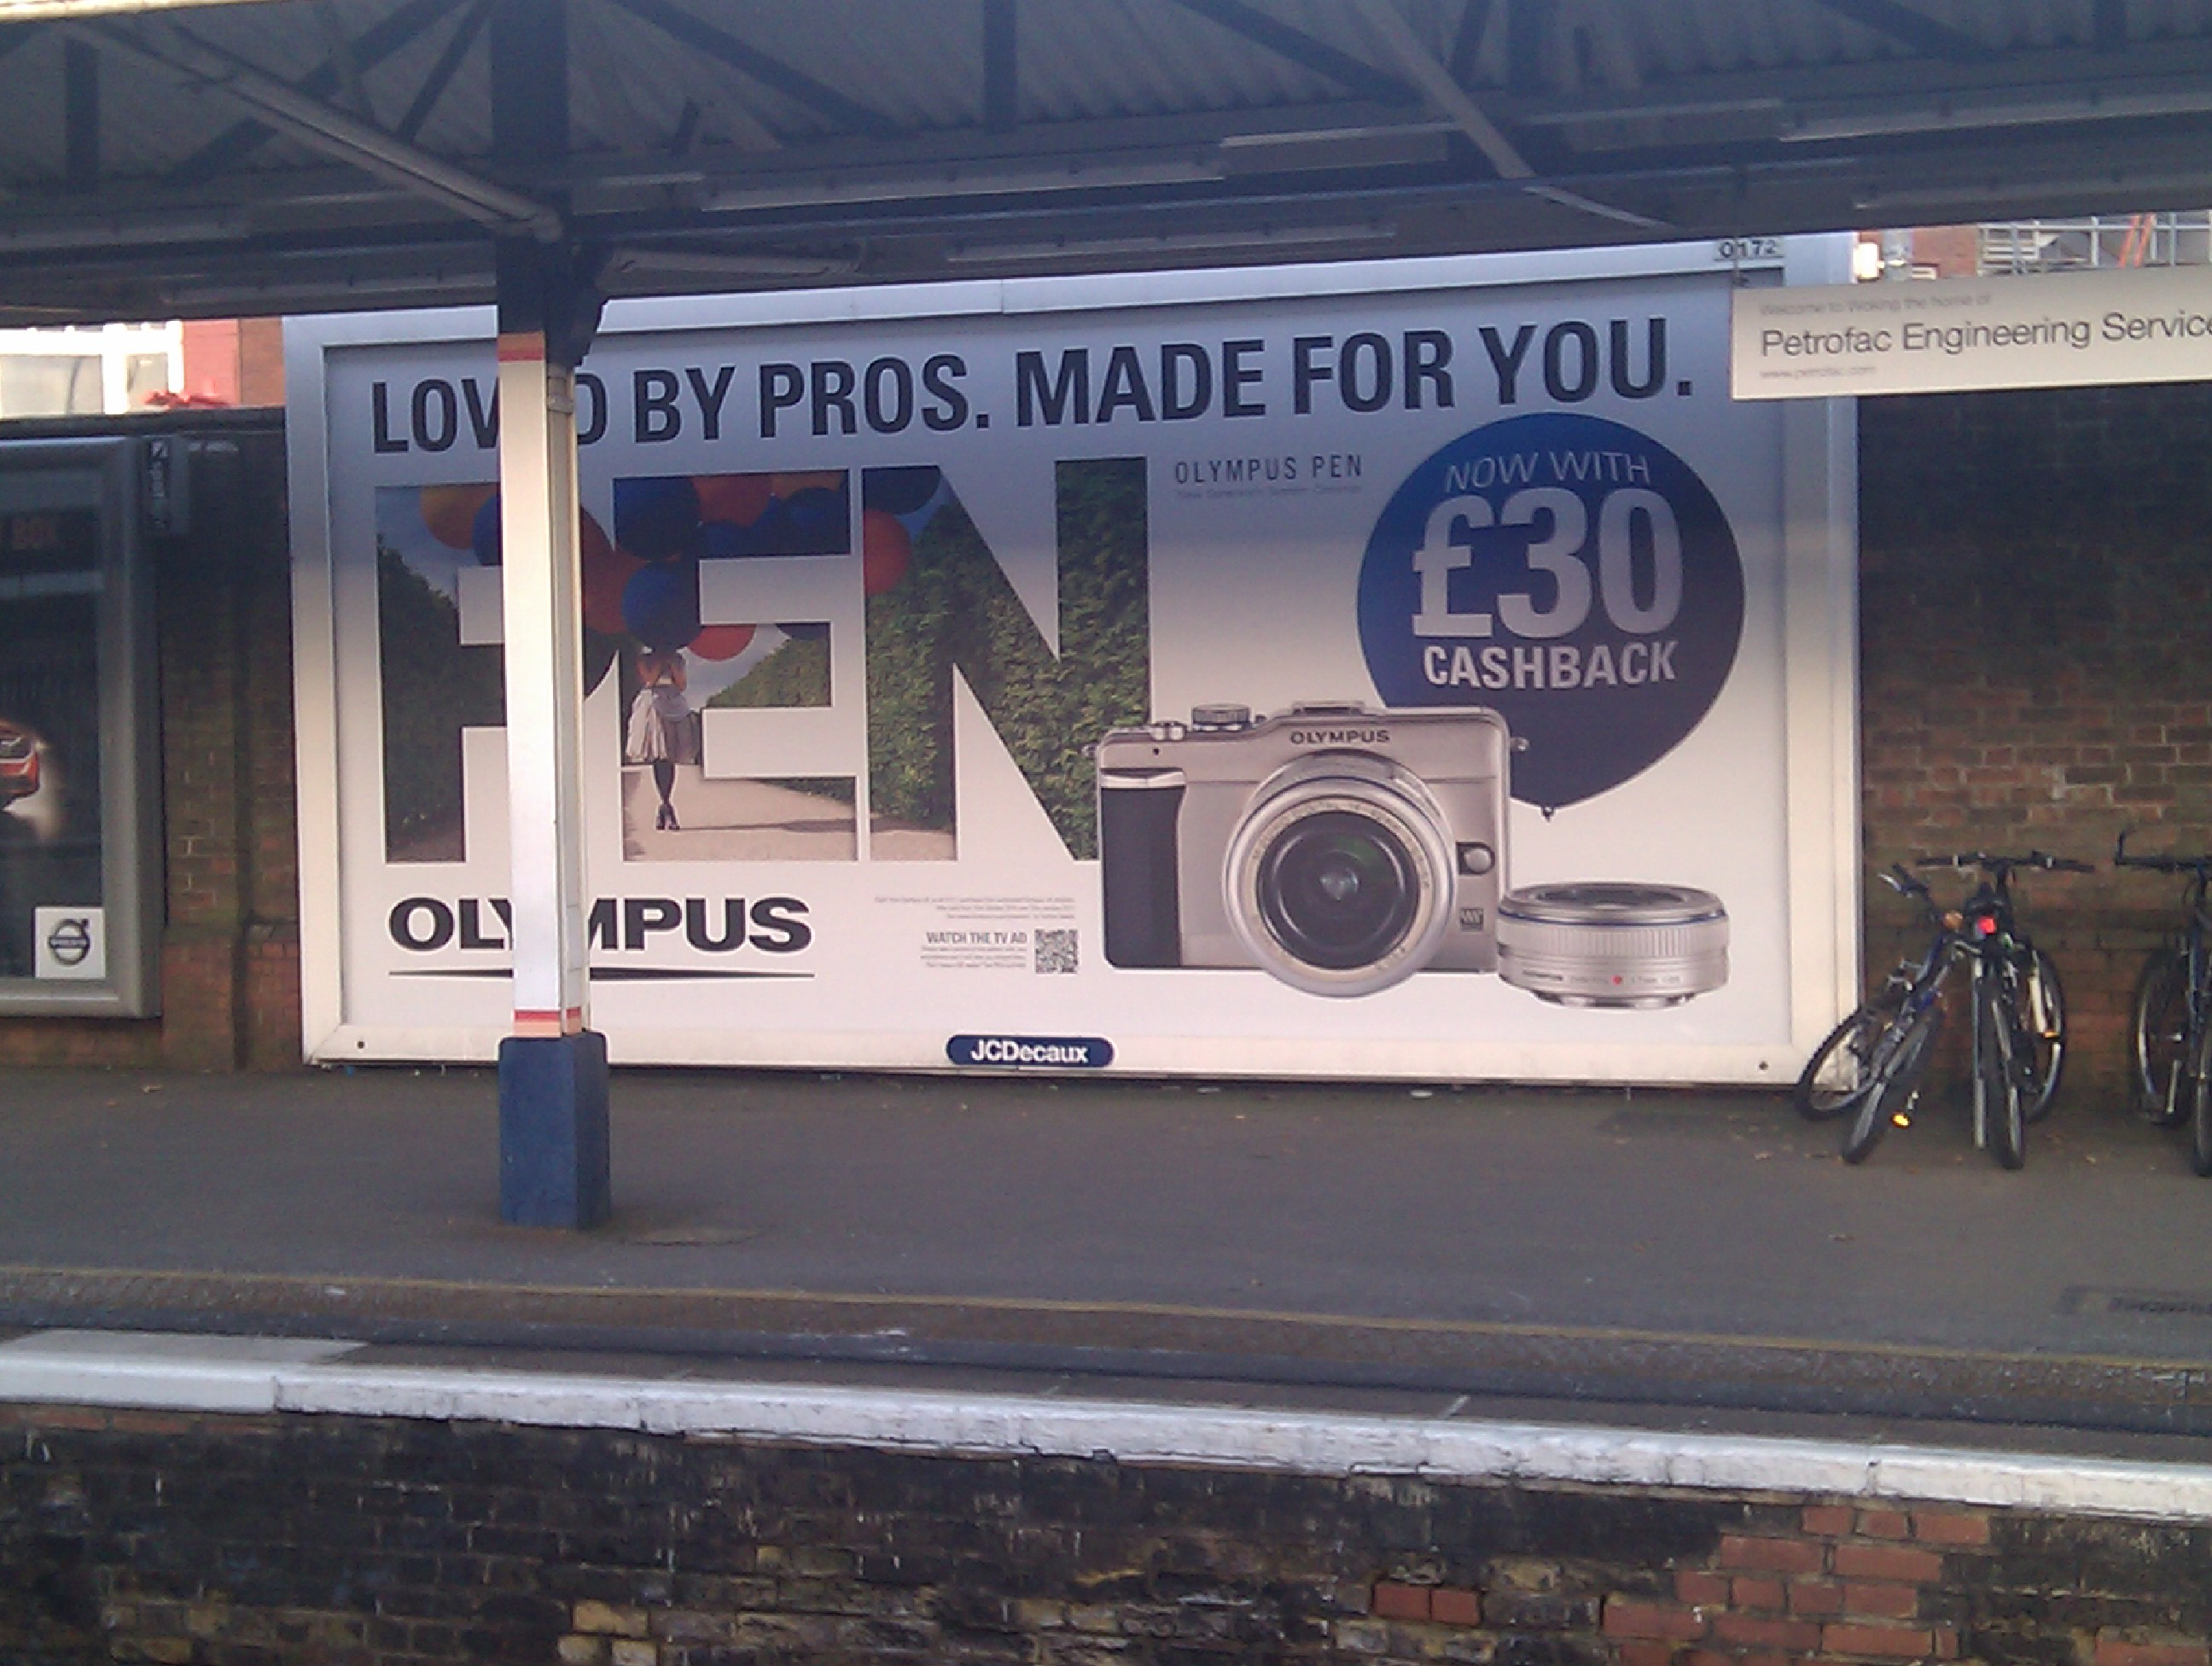 A large poster with an advert for a camera